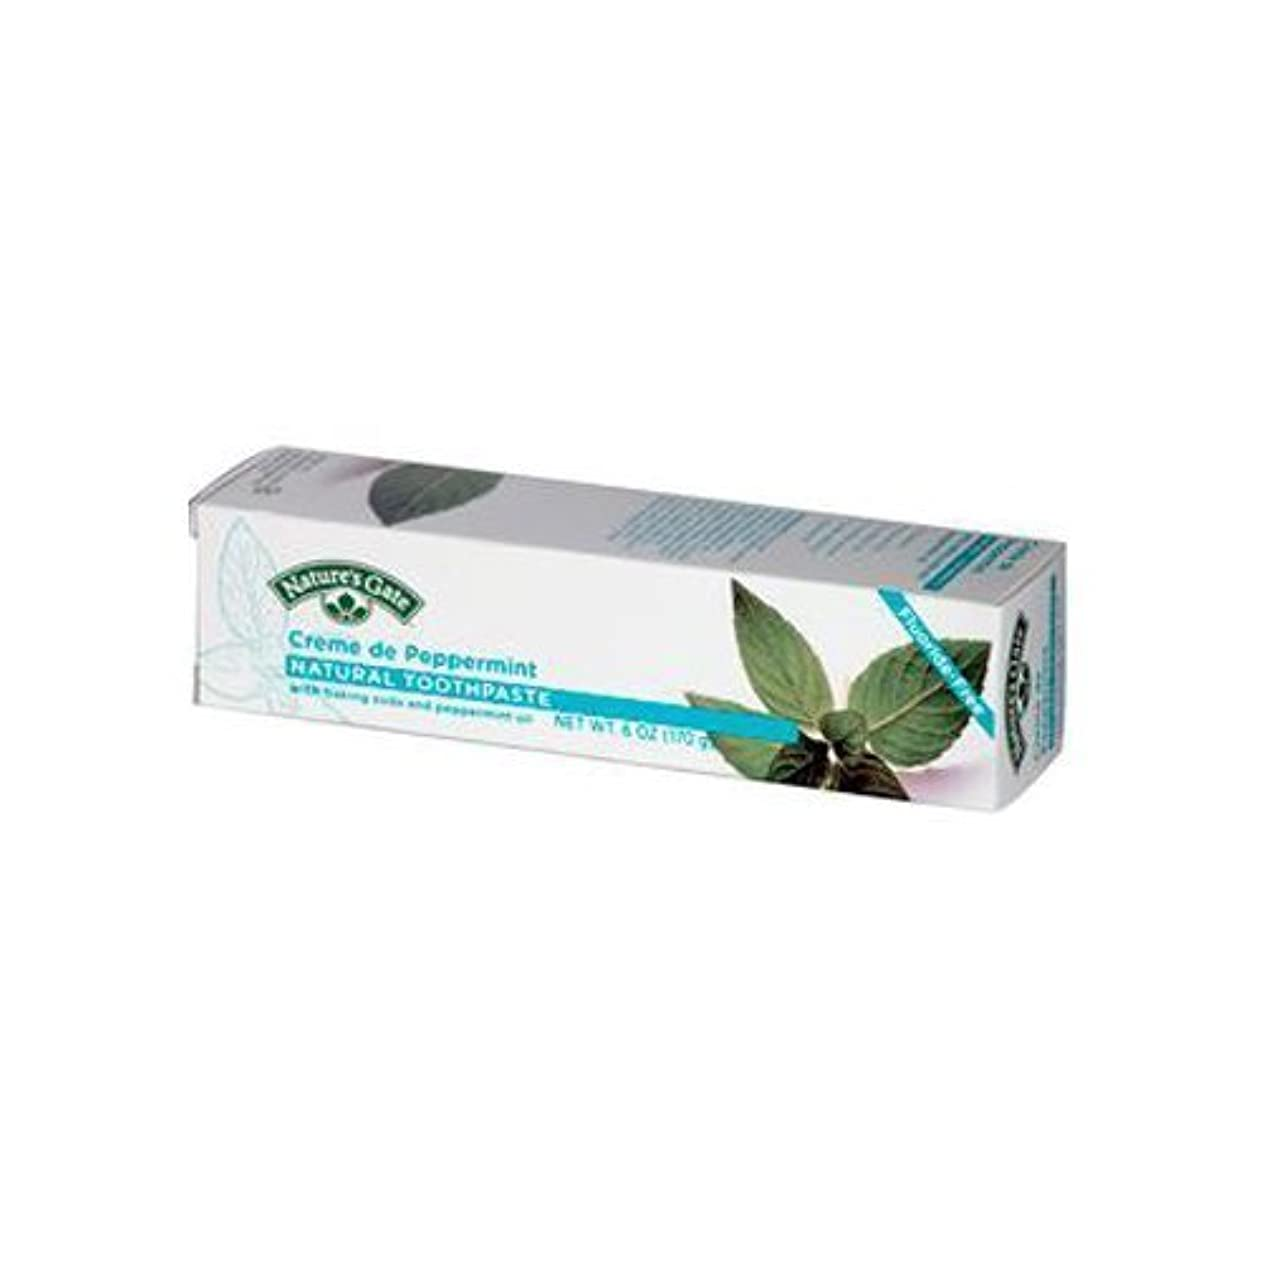 抽出未来粘着性Natures Gate Natural Toothpaste Cr?me De Peppermint - 6 oz - Case of 6 by NATURE'S GATE [並行輸入品]